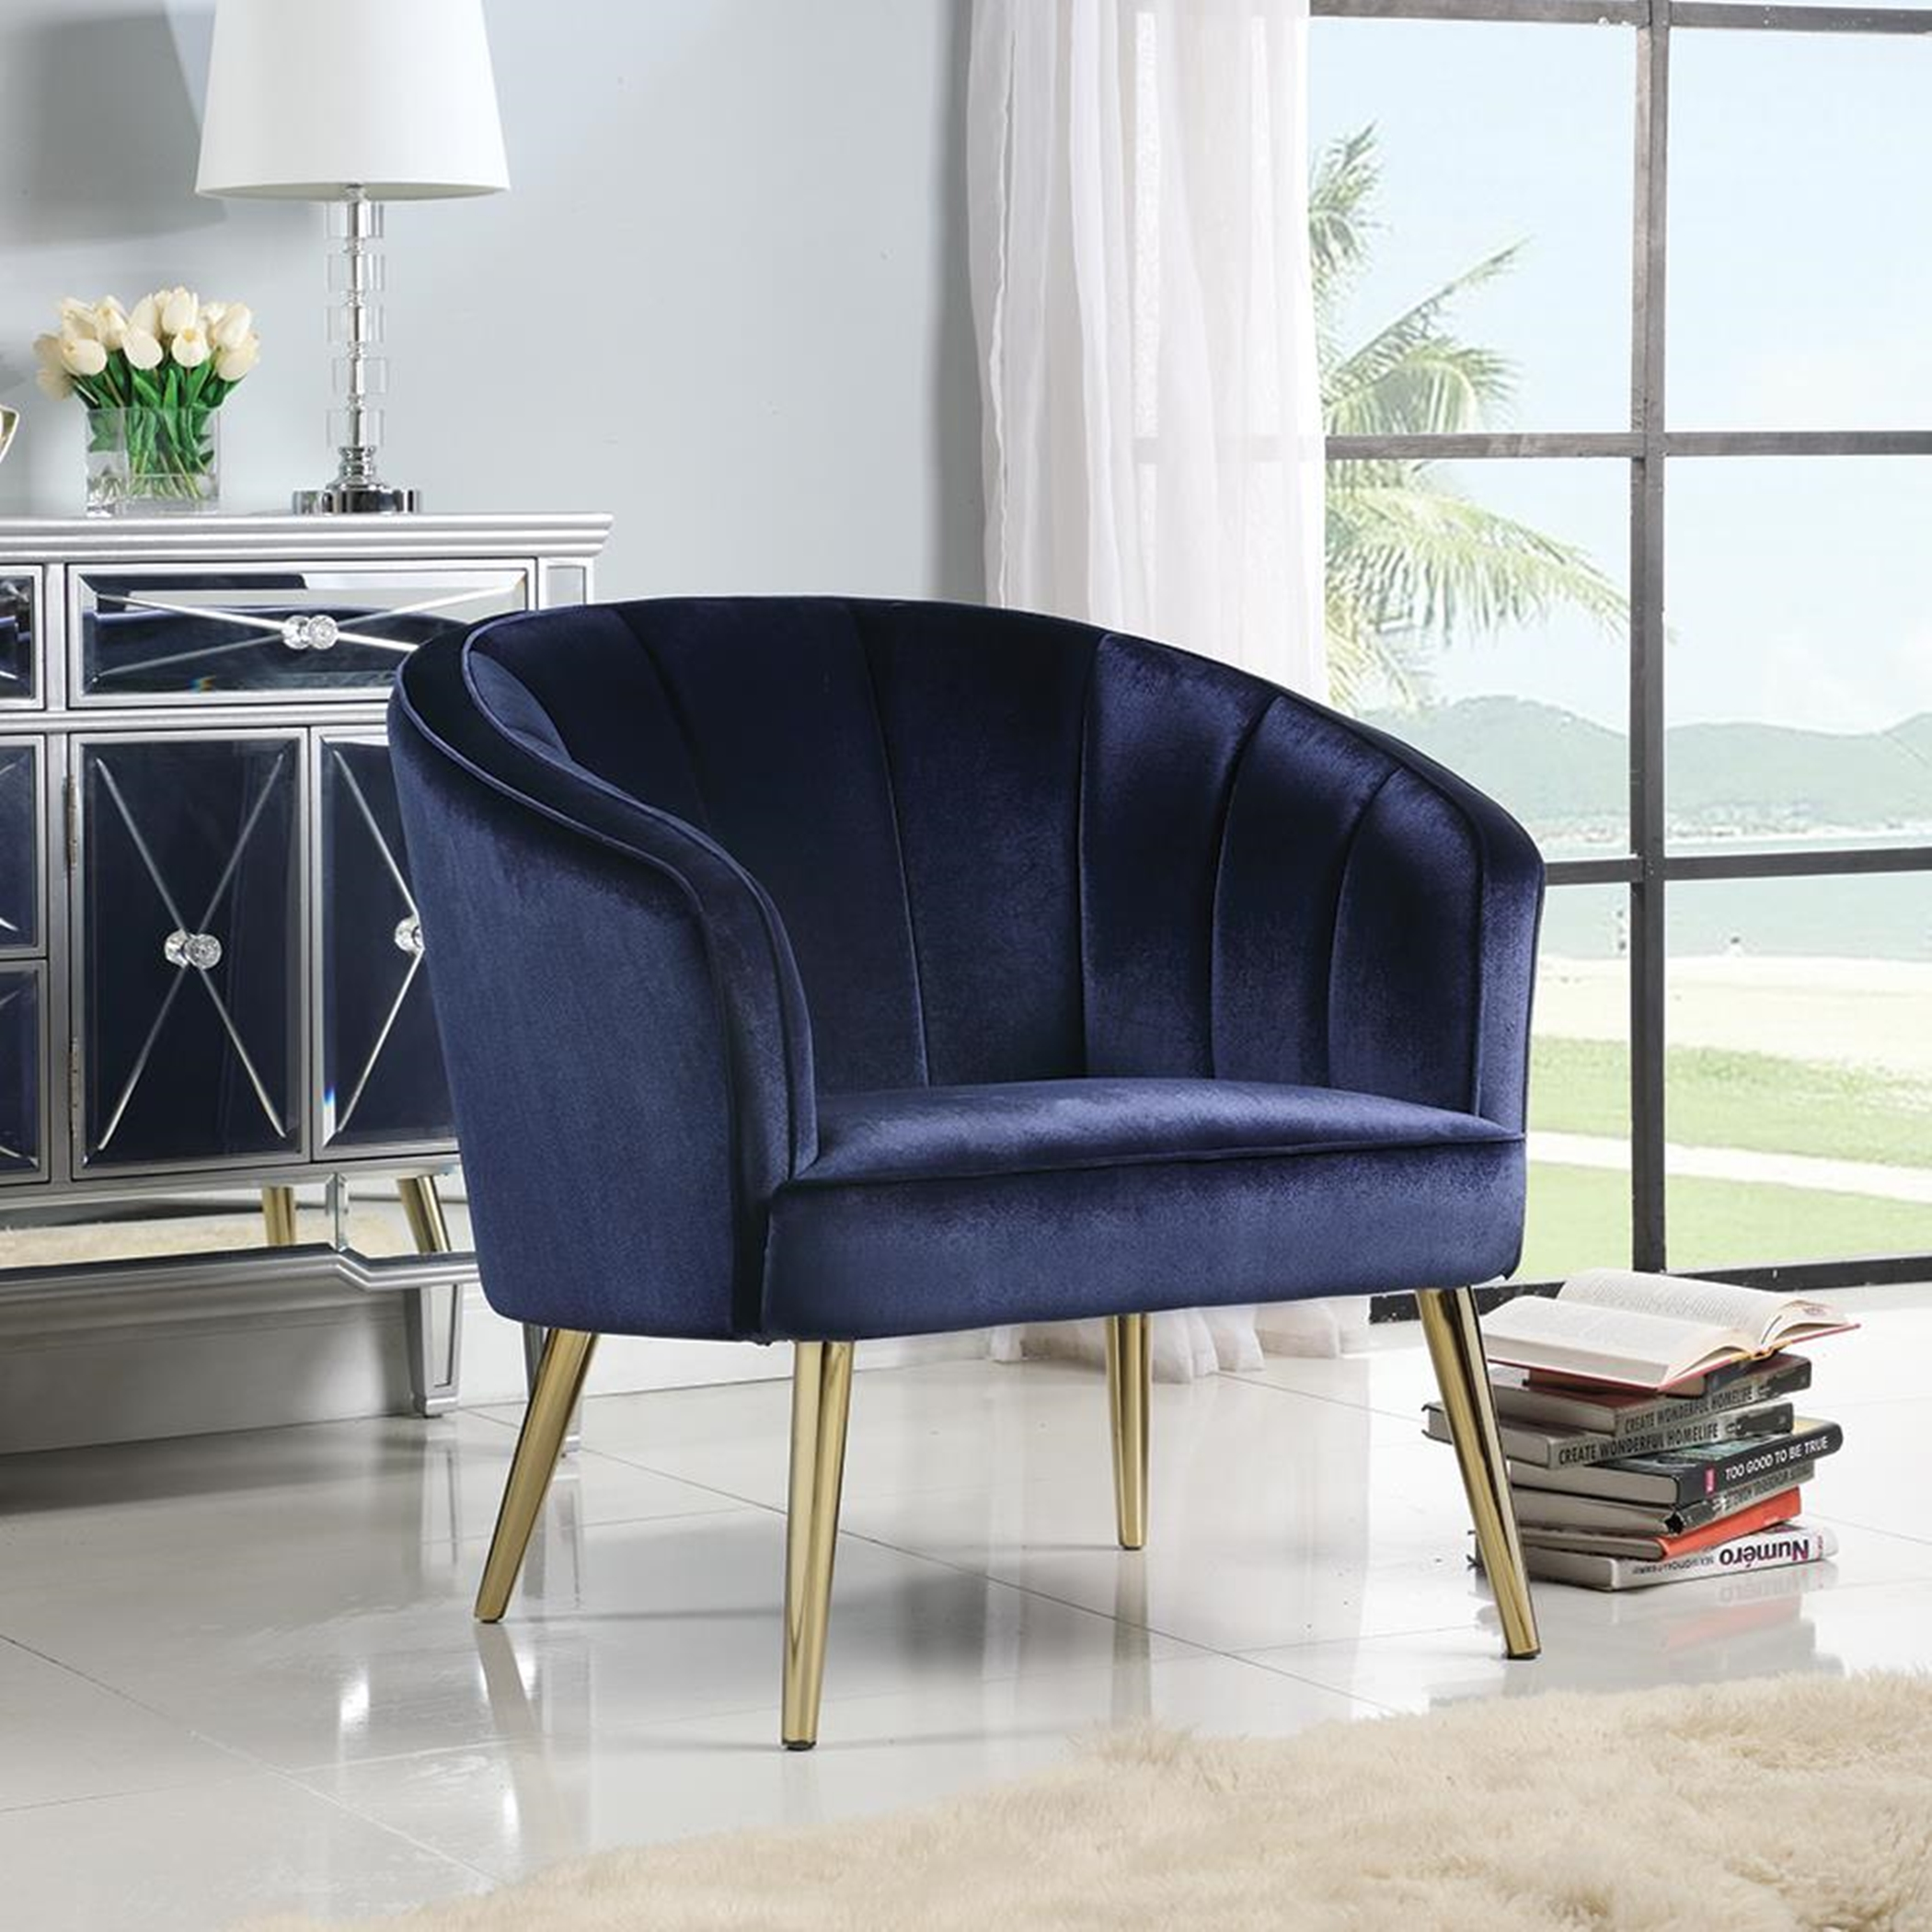 903034 - Accent Chair